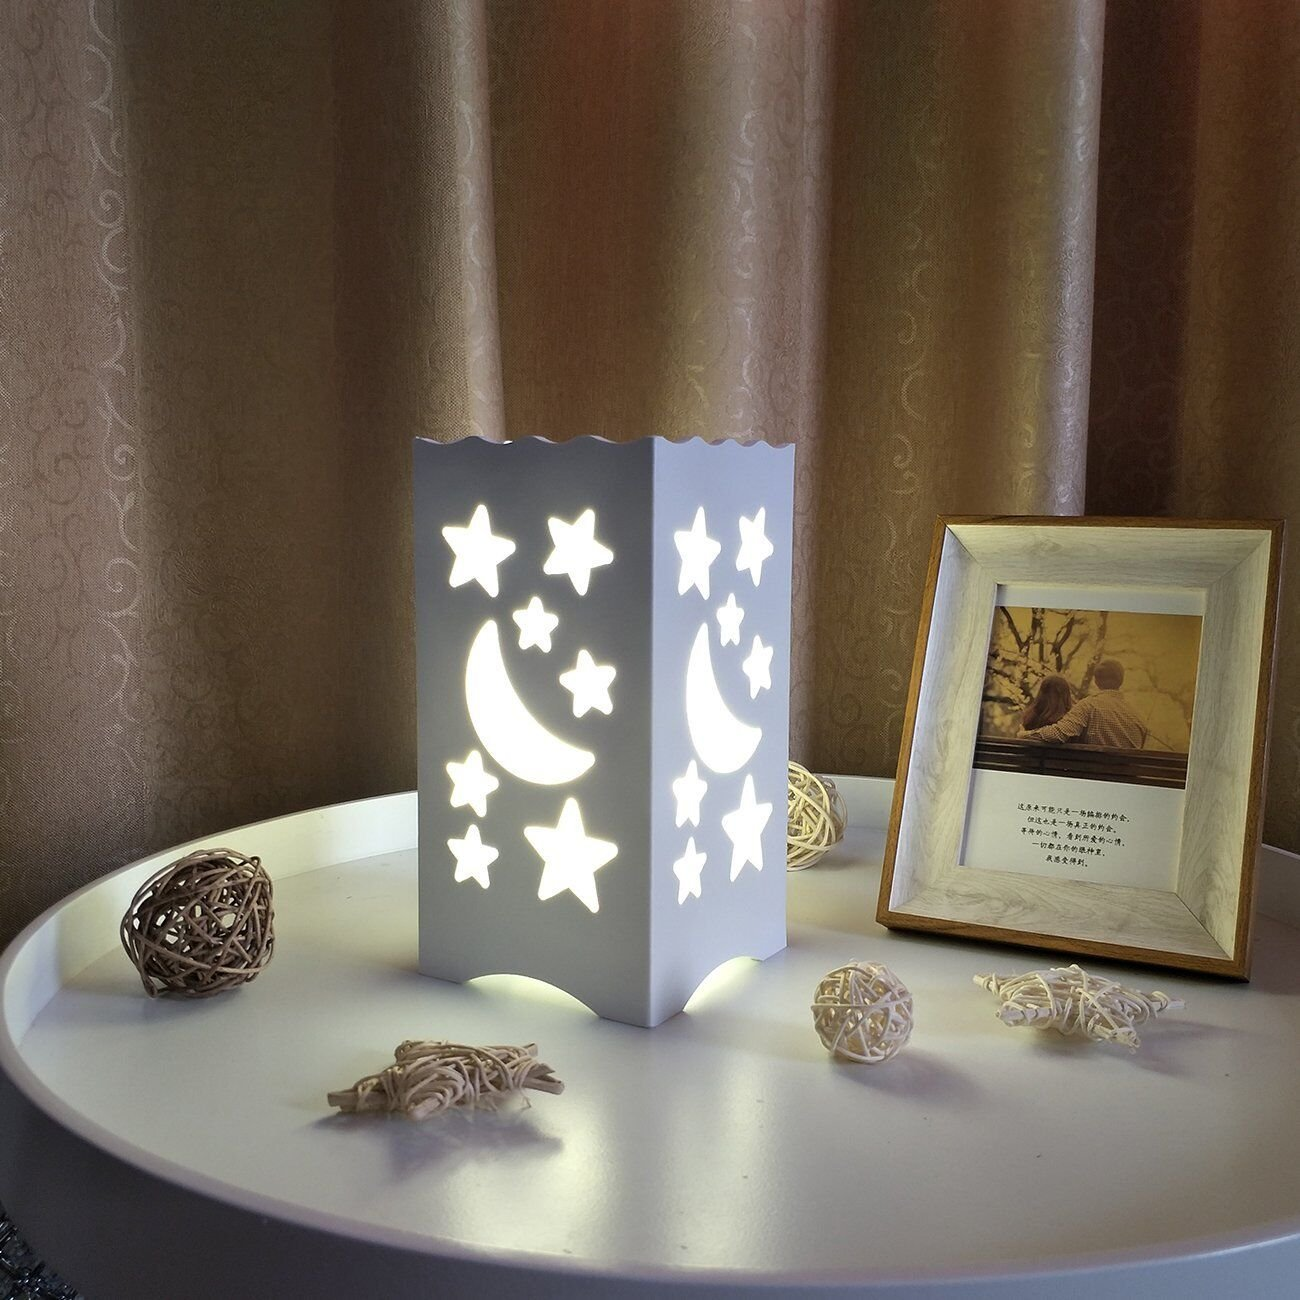 Kids Night Light Table Light White Art Light with Moon and Star Shaped Carving, Desk Lamp Night Light for Nursery,Bedroom(Star) by Dengbaba (Image #5)